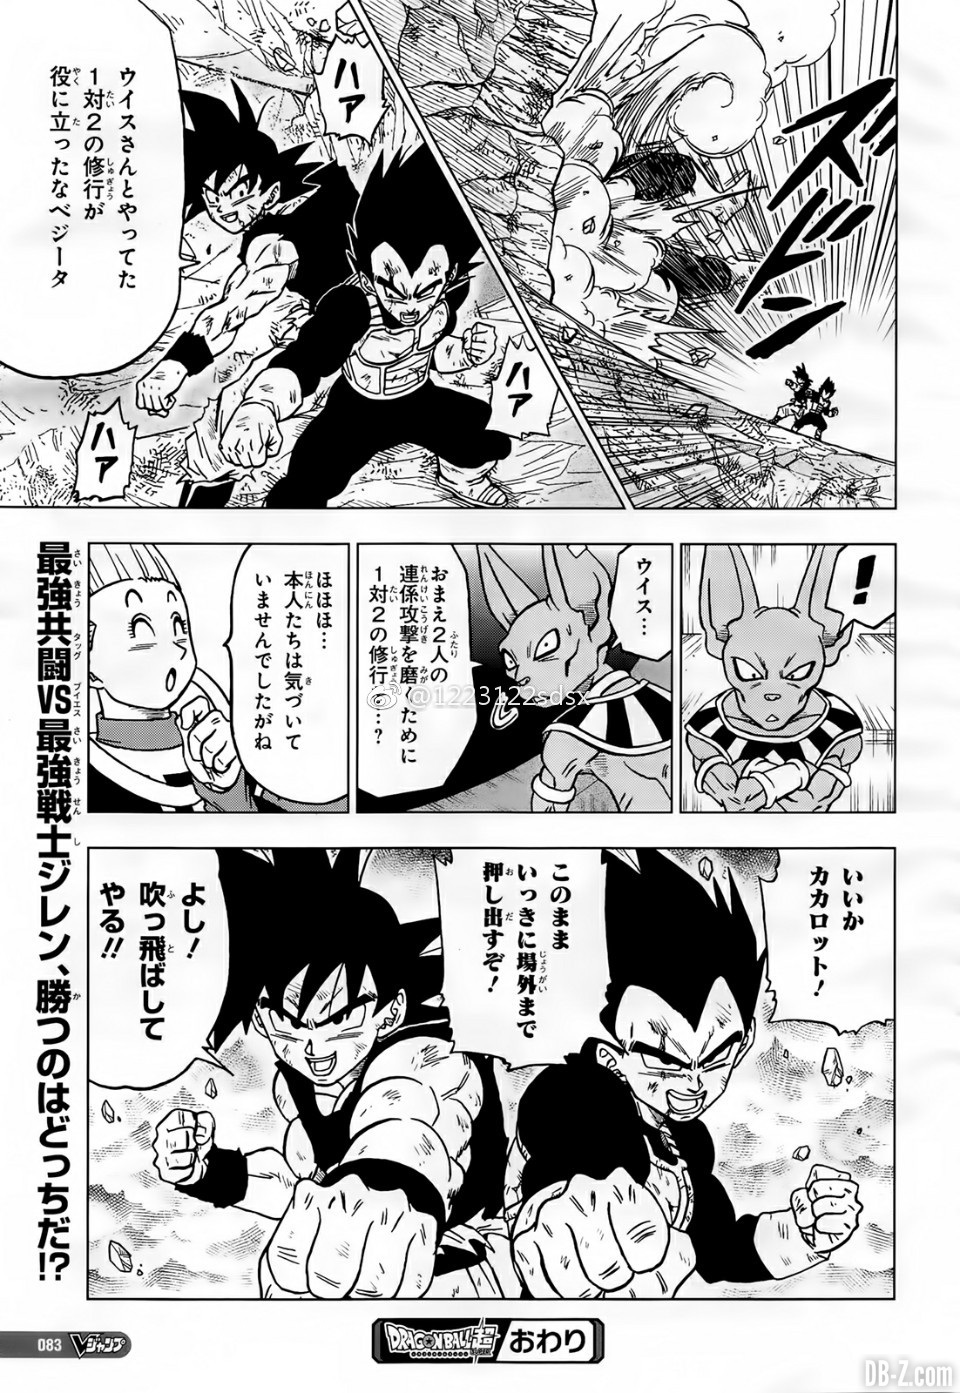 Chapitre 41 de Dragon Ball Super 3